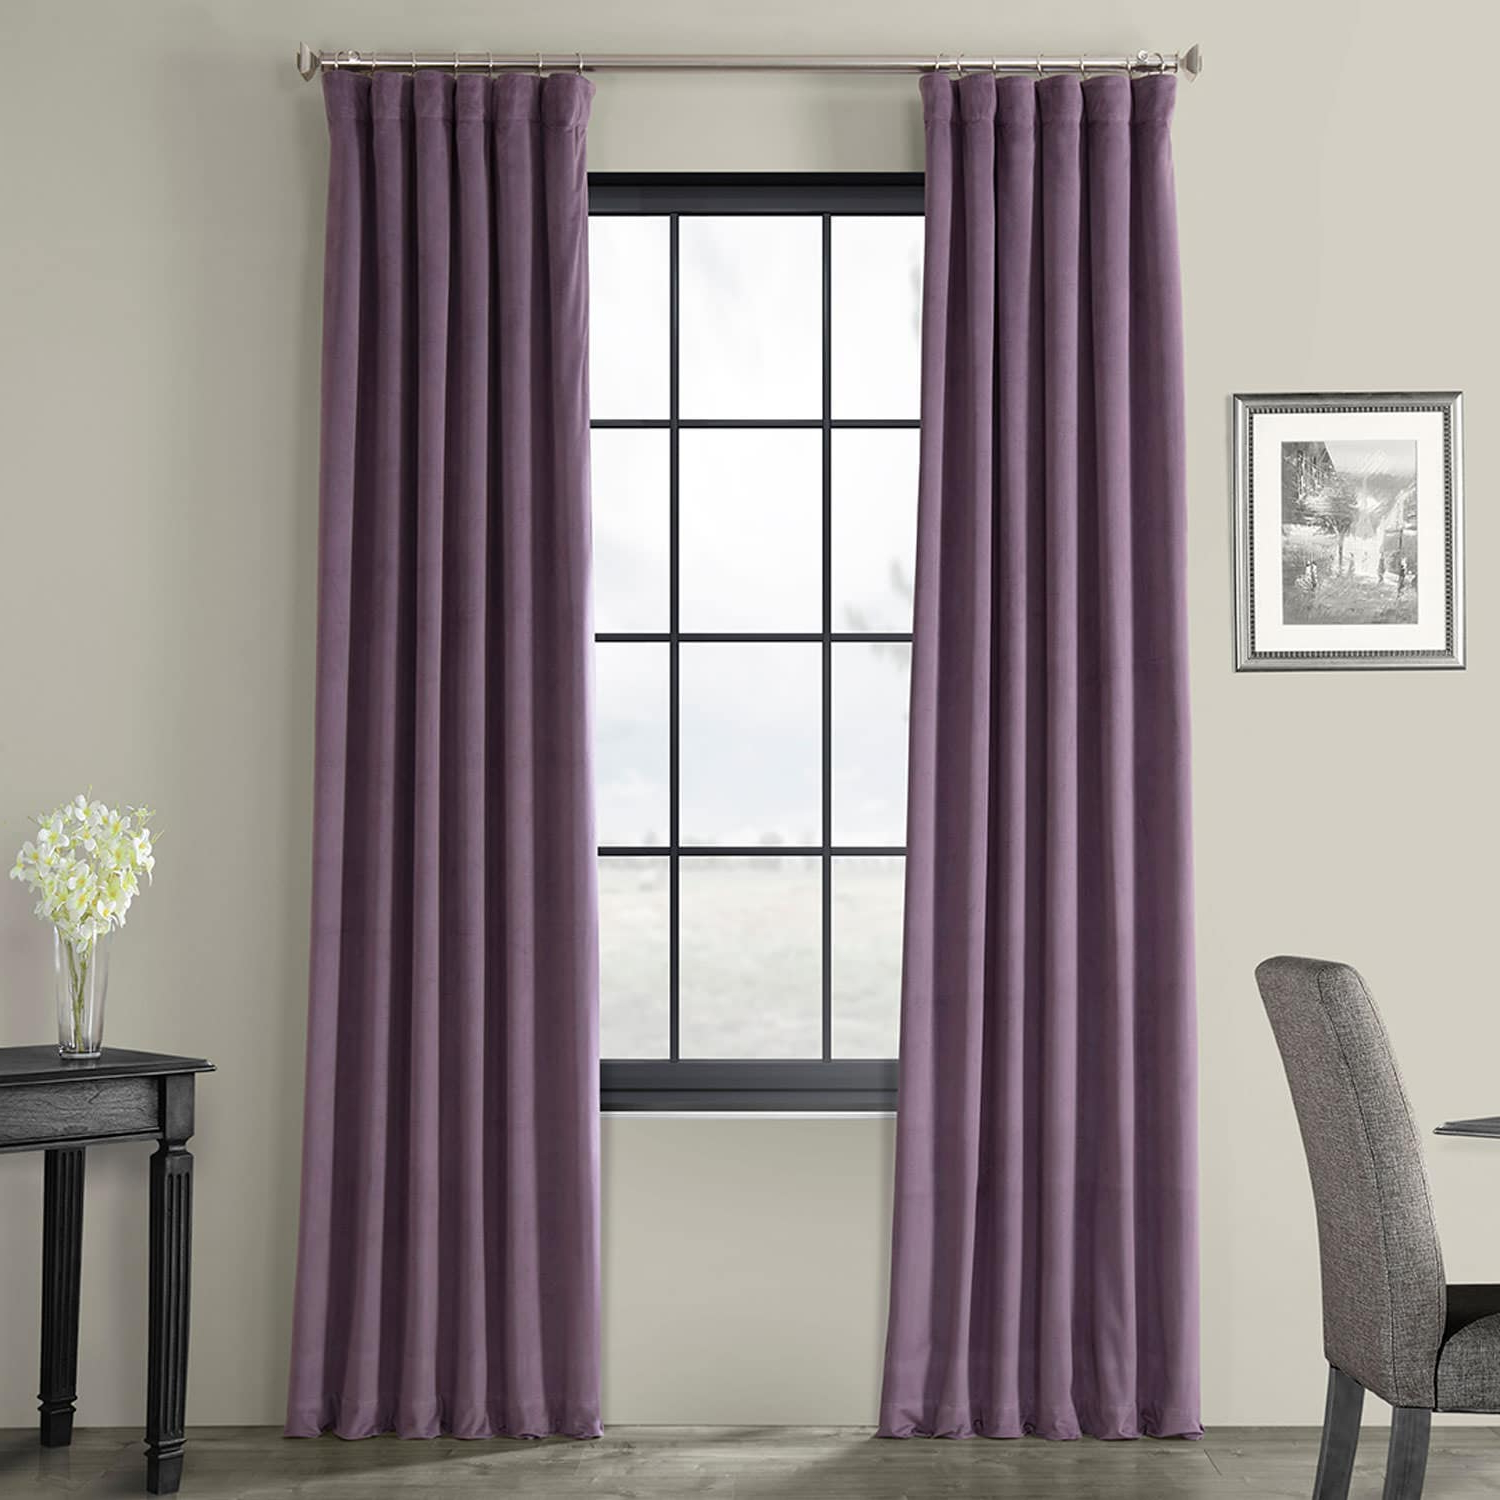 Signature Fresh Violet Blackout Velvet Curtain In Most Current Signature Blackout Velvet Curtains (View 16 of 20)